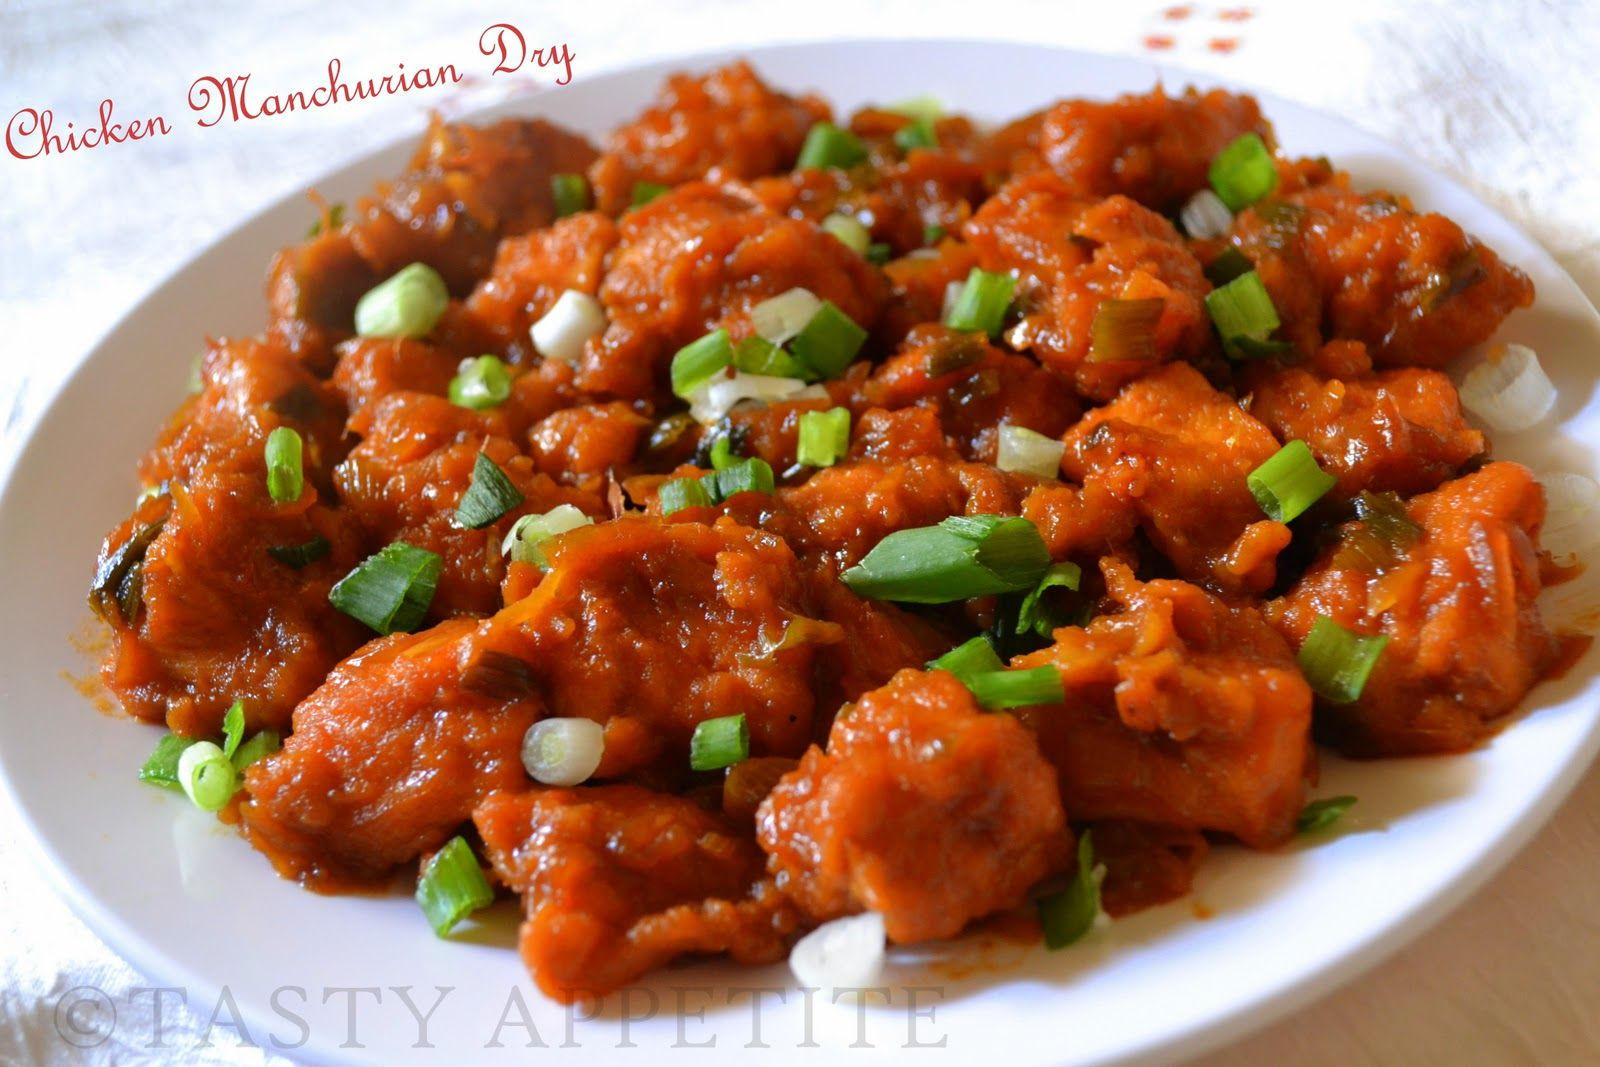 Tasty appetite chicken manchurian indo chinese dish tasty appetite chicken manchurian indo chinese dish forumfinder Choice Image